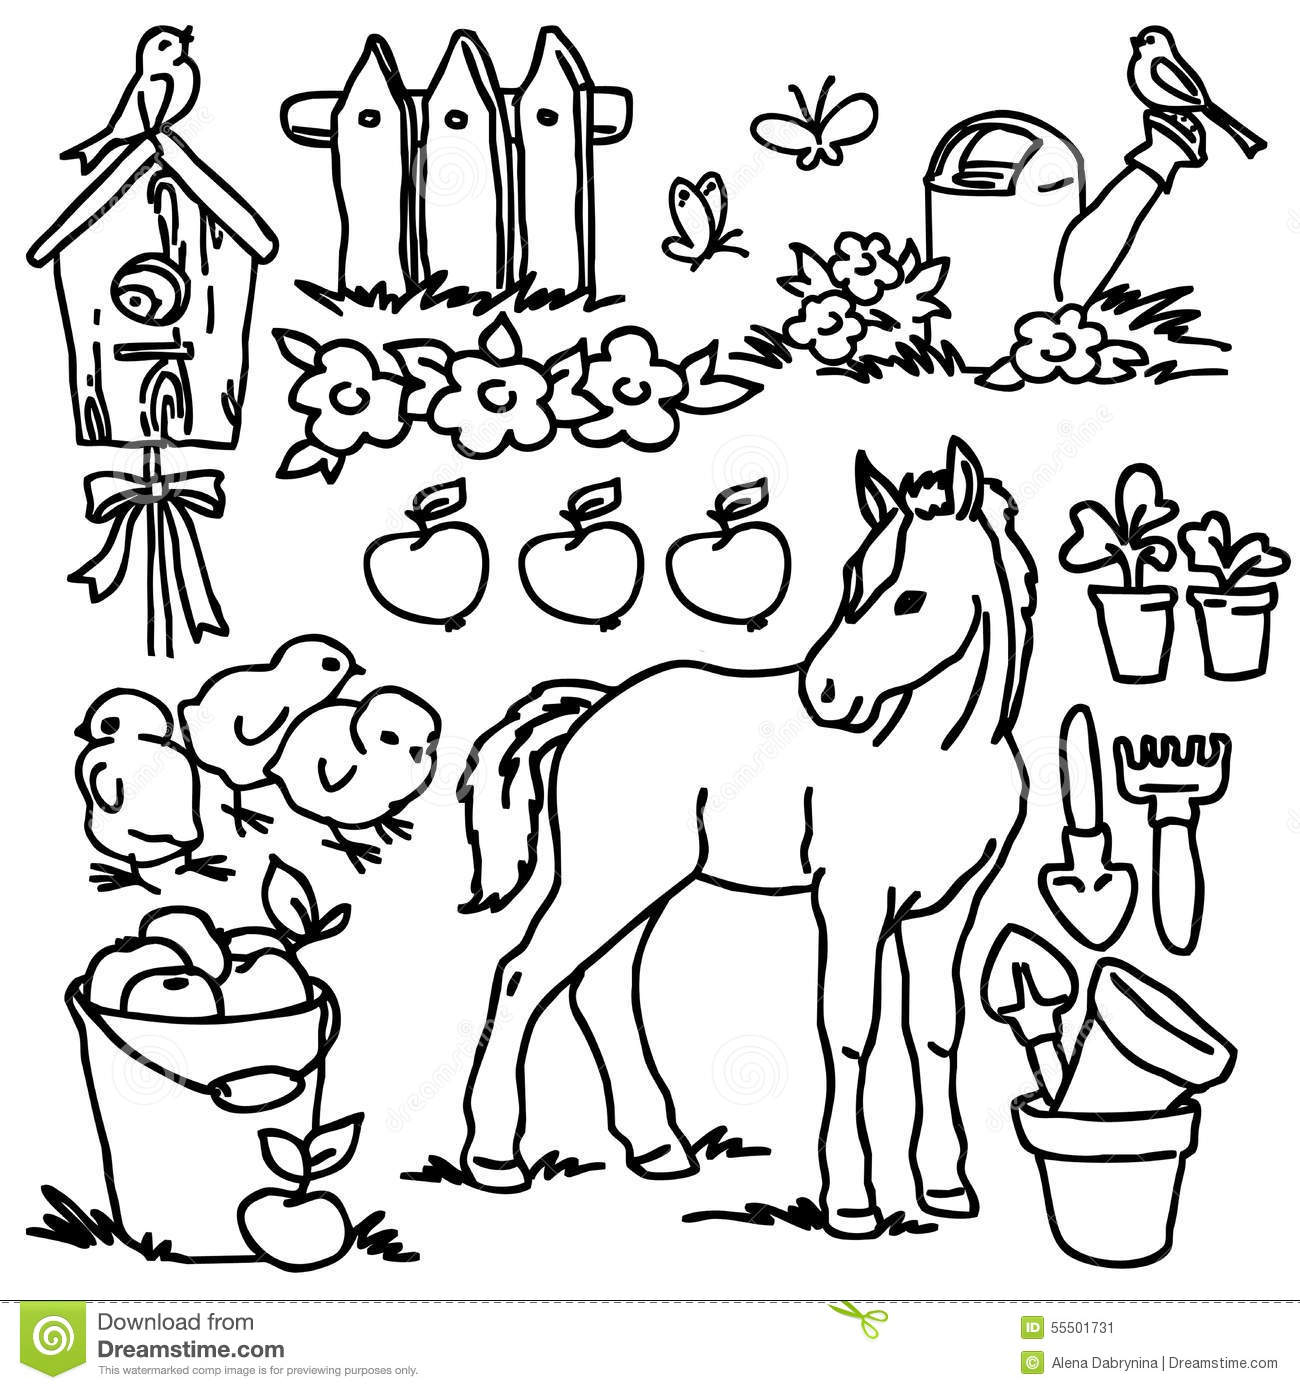 Stock Illustration Coloring Book Cartoon Farm Animals Horse Bird Vegetables Fruits Garden Tools Decoration Elements Kid Drawing Image55501731